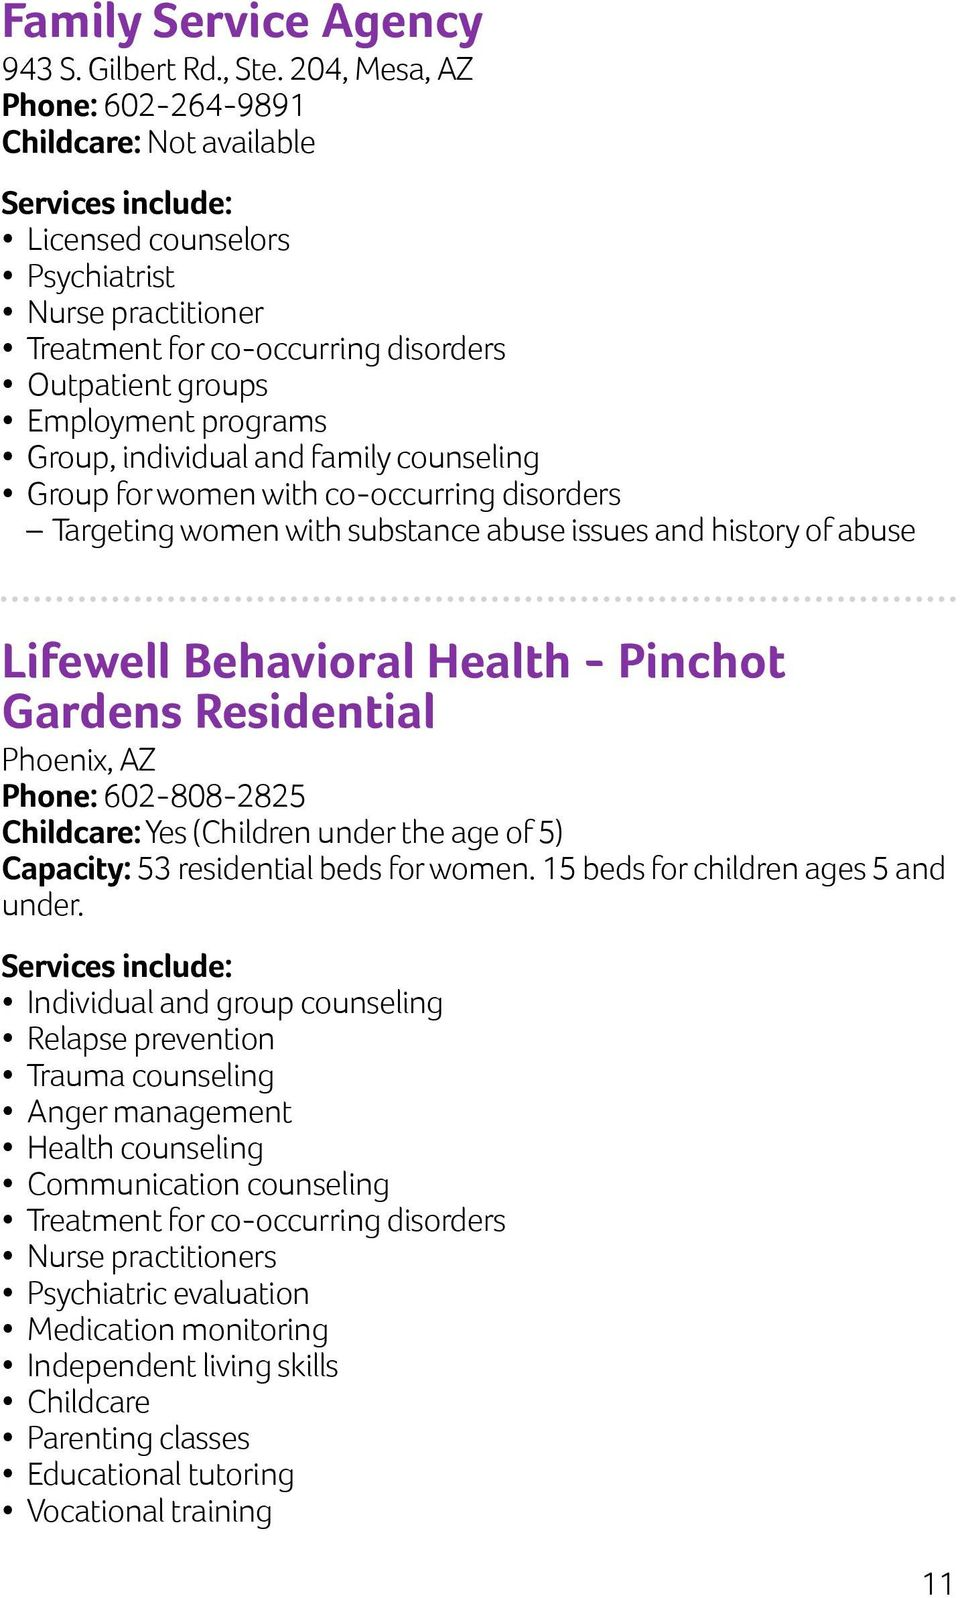 individual and family counseling Group for women with co-occurring disorders Targeting women with substance abuse issues and history of abuse Lifewell Behavioral Health - Pinchot Gardens Residential